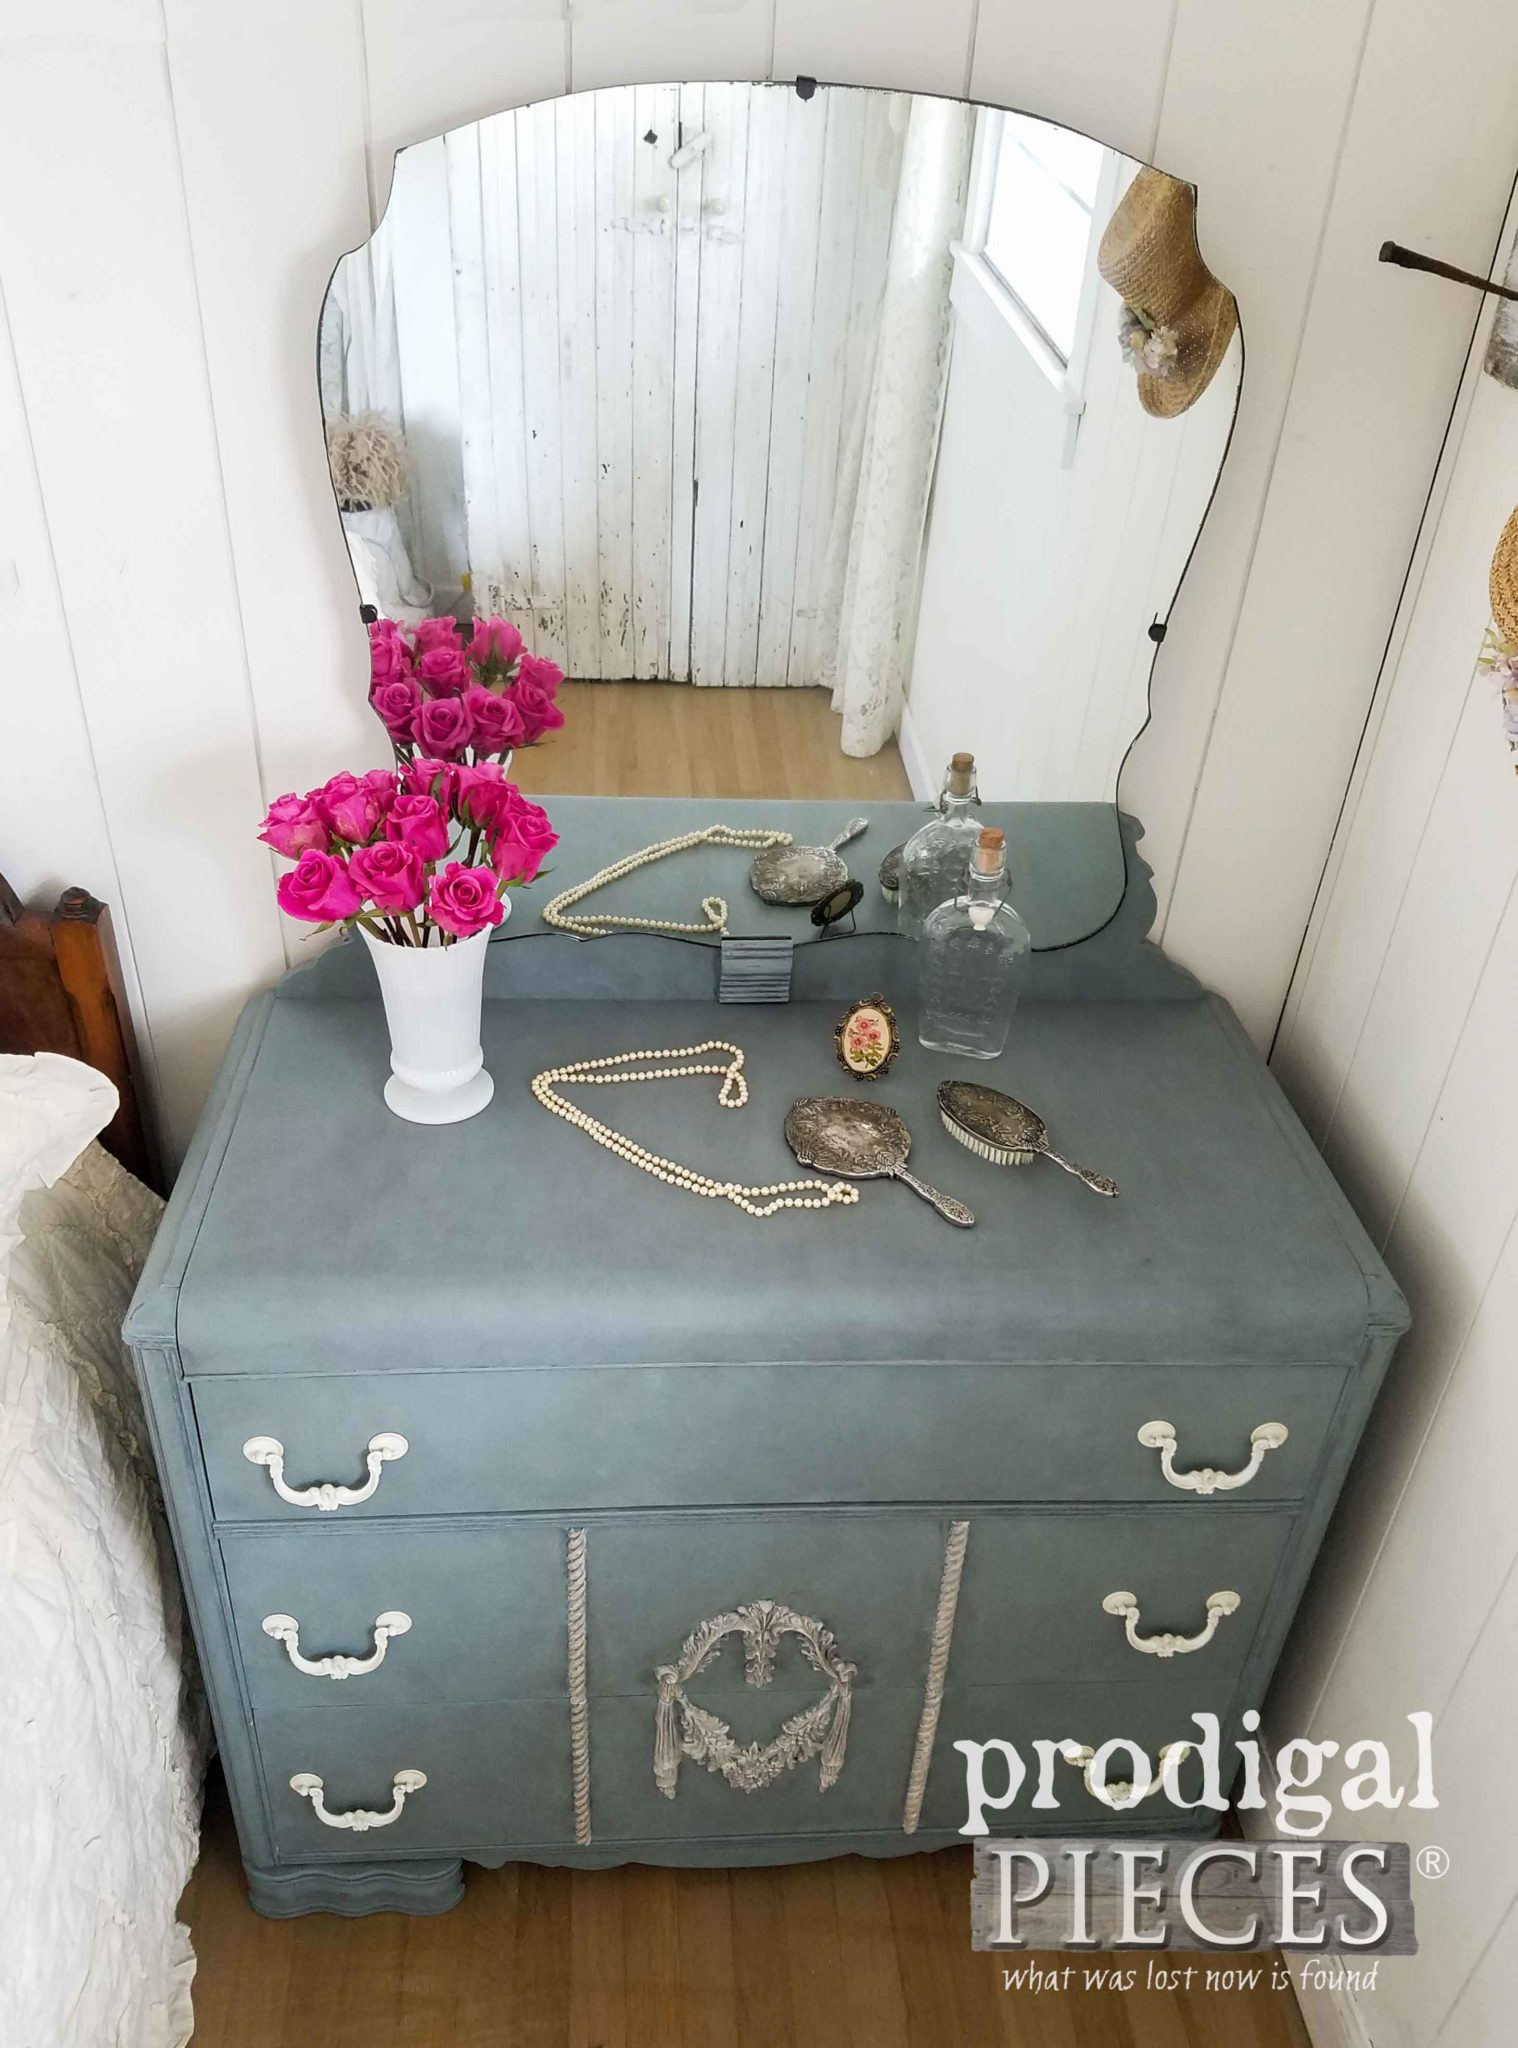 Vintage Waterfall Dresser Gets Fresh New Look with Dixie Belle Chalk Mineral Paint by Prodigal Pieces | prodigalpieces.com